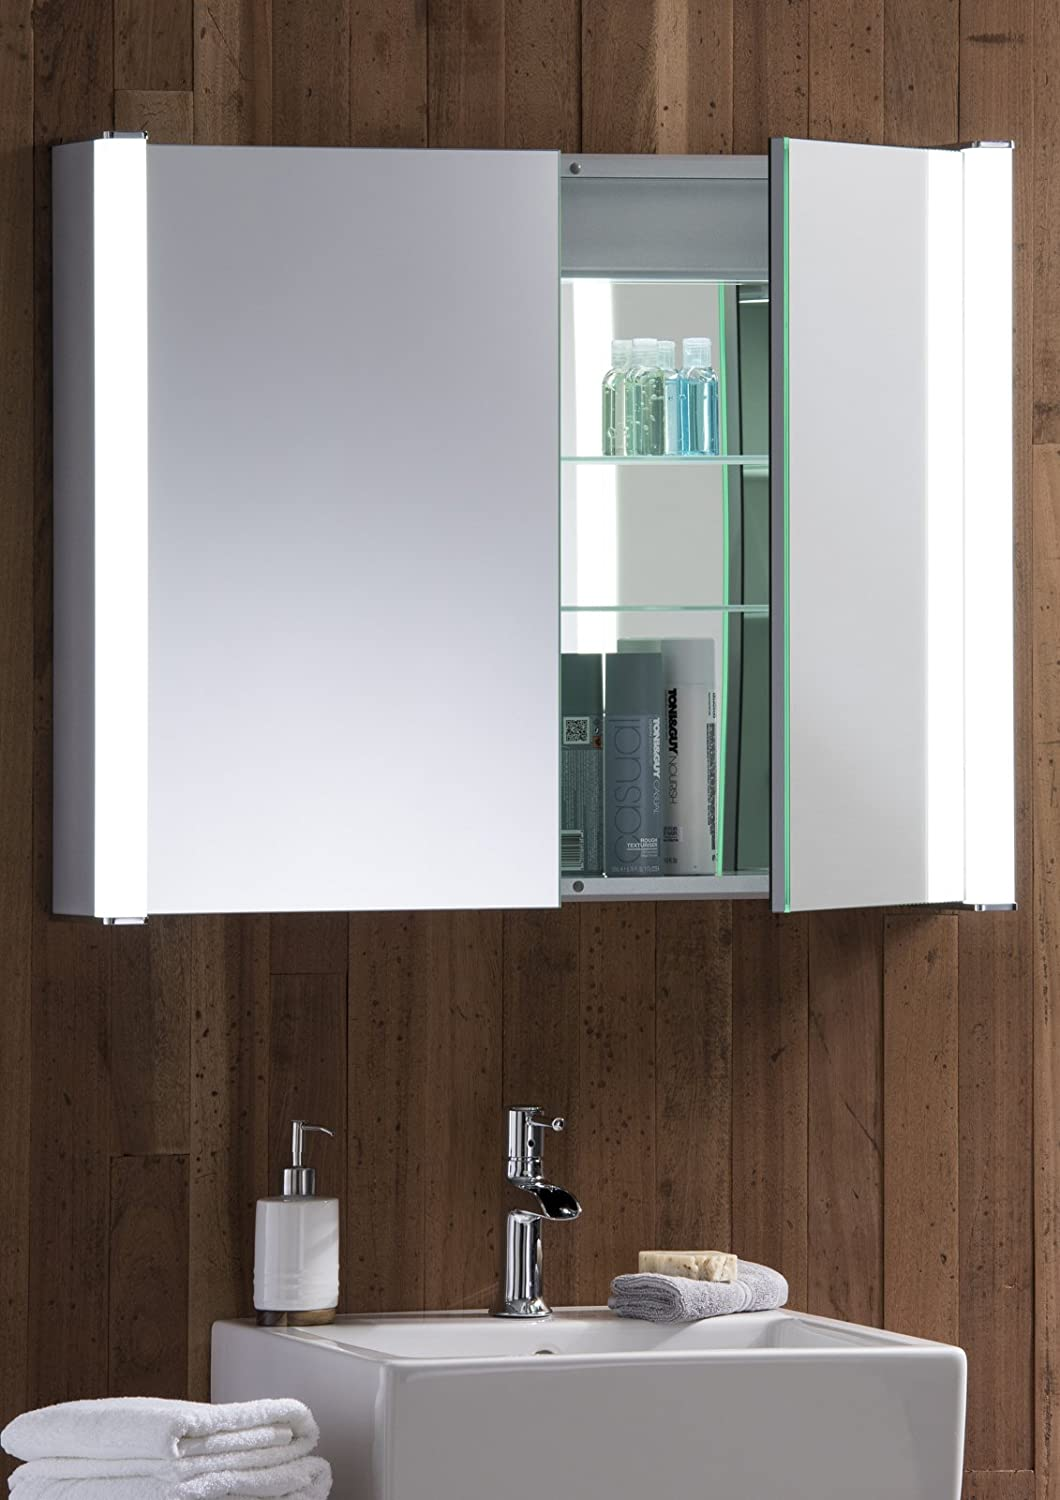 Led Illuminated Bathroom Mirror Cabinet With Demister Heat Pad Shaver And Sensor Switch With Lights 65cm H X 80cm W X 16cm D C13 Amazon Co Uk Kitchen